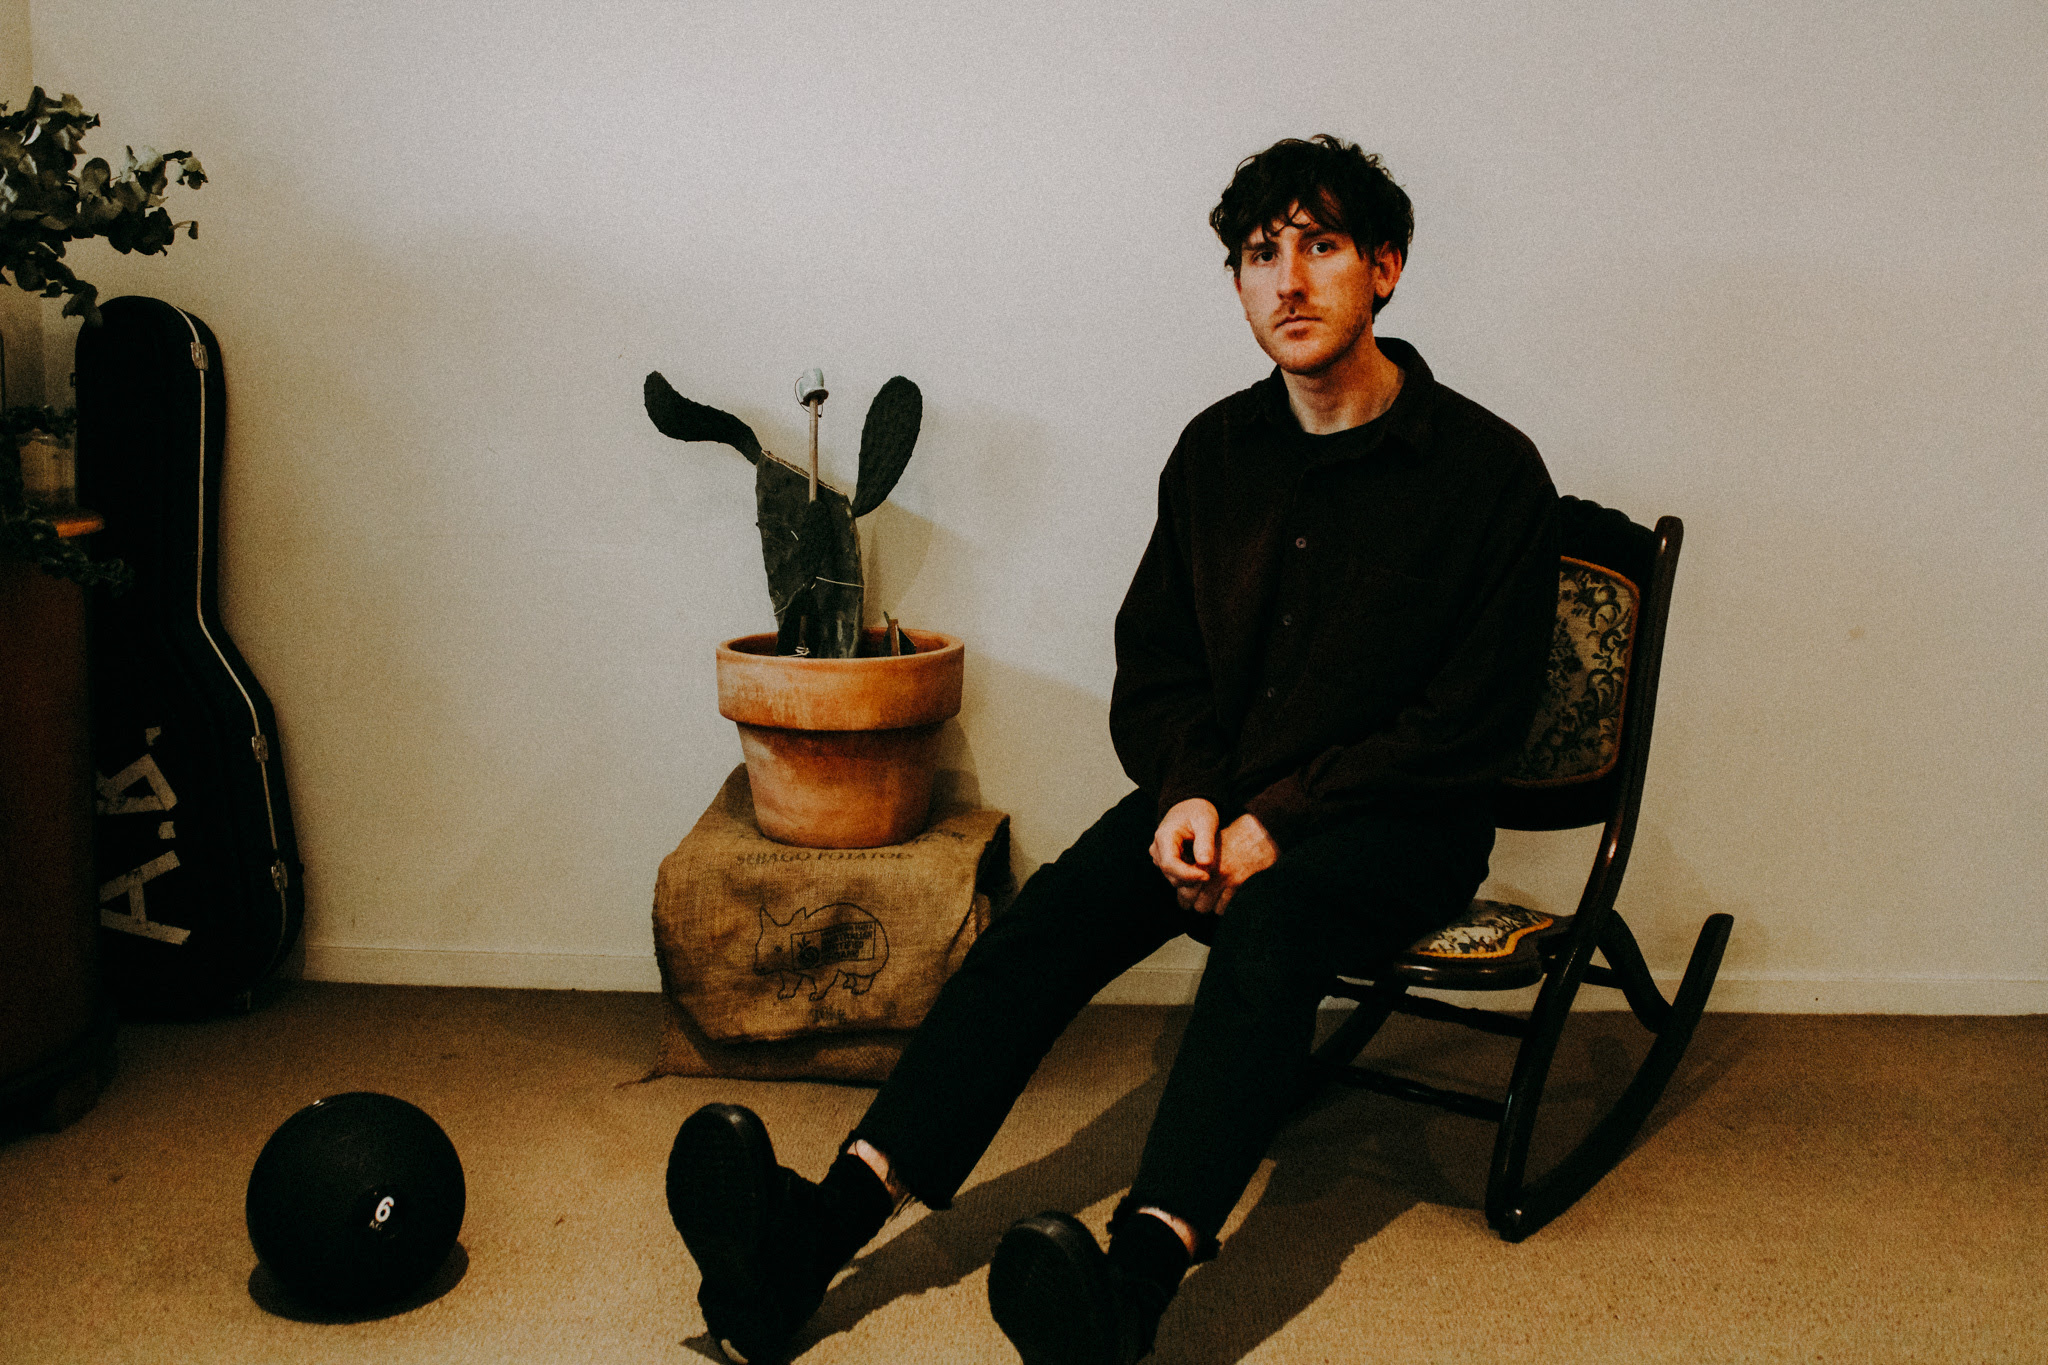 Alexander is sitted on a dark wood chair, looking at the camera. Behind him there's a beige wall with a vase inside a vase and a cactus shaped plant. He is wearing black and has high boots and a gentle face.